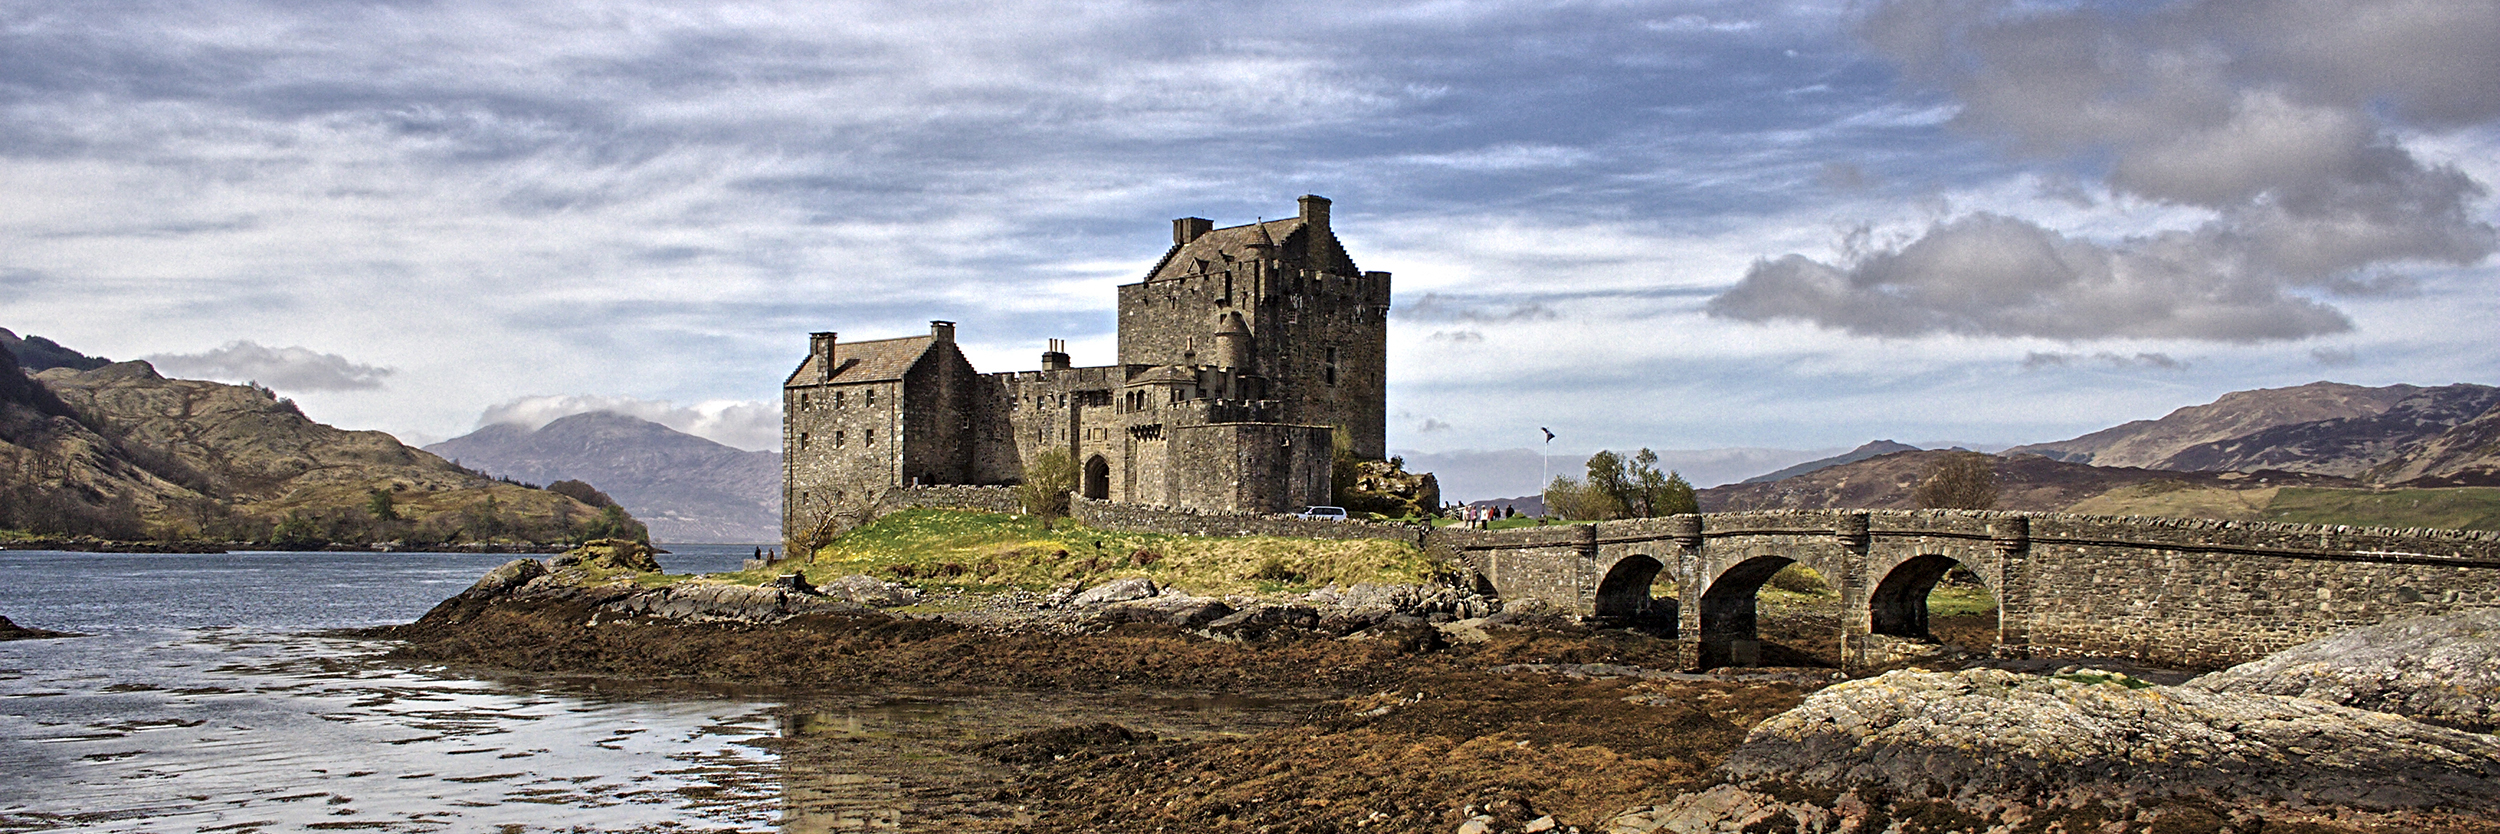 Scotland360° Bespoke Photography Workshops